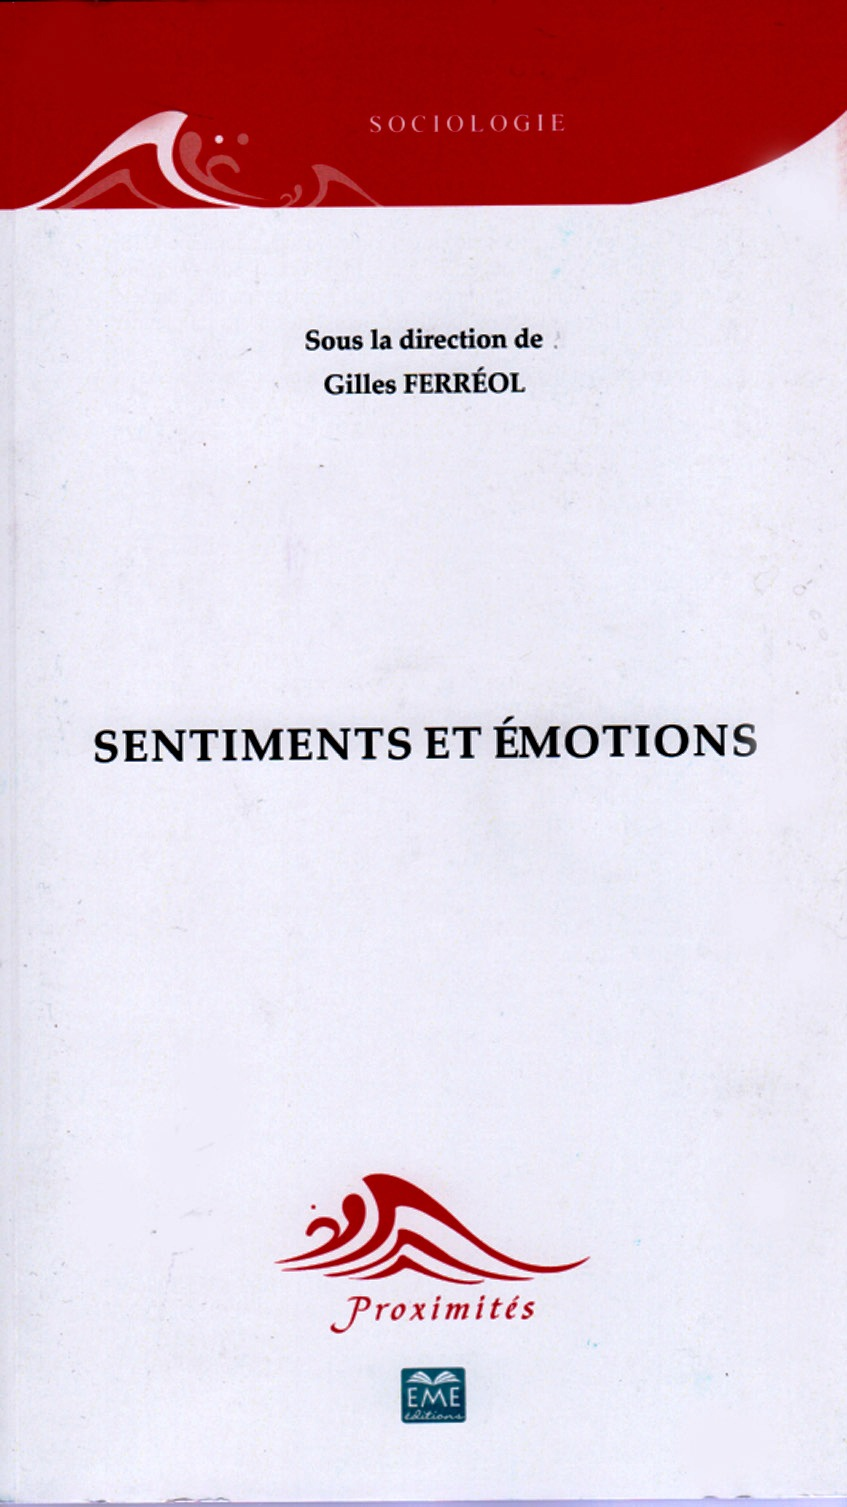 Jo�lle Deniot in G Ferr�ol Sentiments et �motions Besan�on 2015